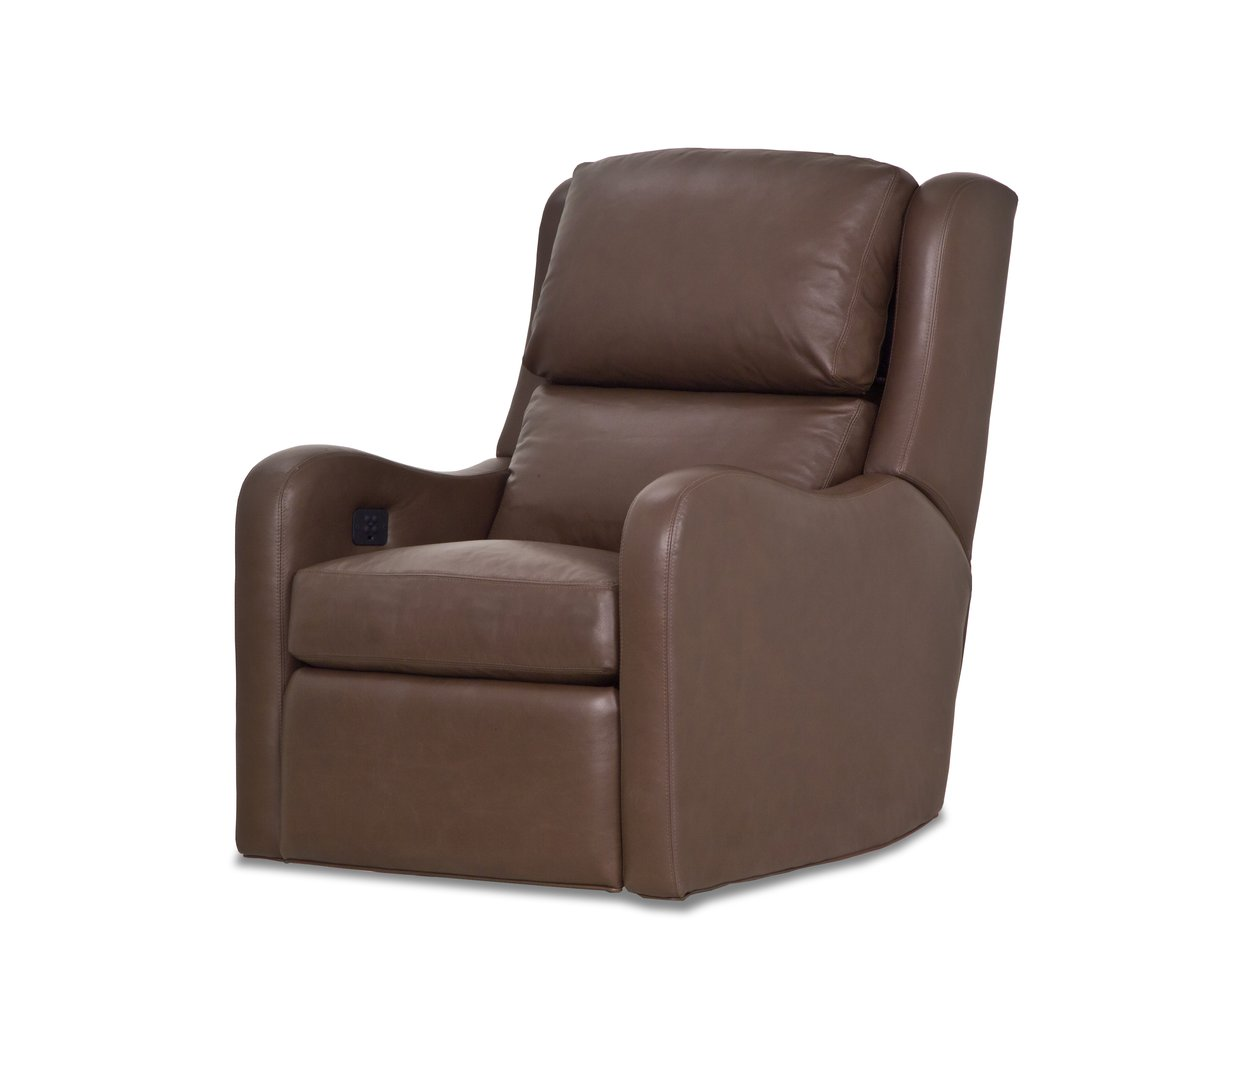 Case Reclining Chair Image